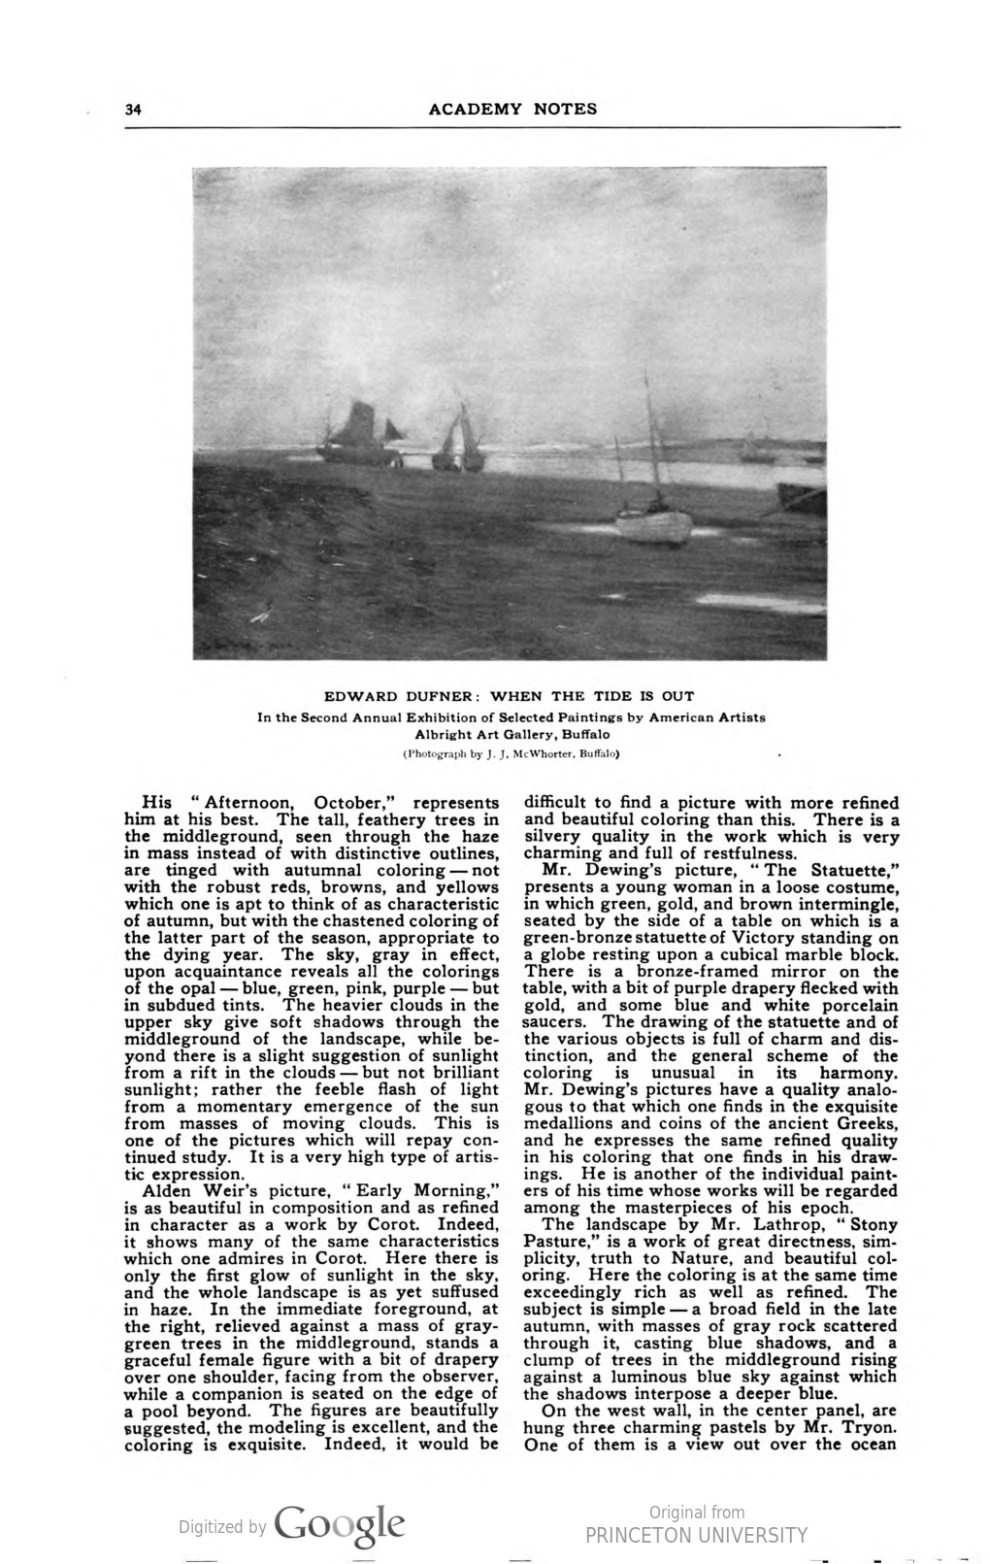 """Academy Notes, Buffalo Fine Arts Academy, Albright Art Gallery, Buffalo, NY, """"Second Annual Exhibition Selected American Paintings at the Albright Art Gallery Second Paper"""", August, 1907, Volume 3, Number 3, page 33-39, illustrated: b&w photo on page 38"""